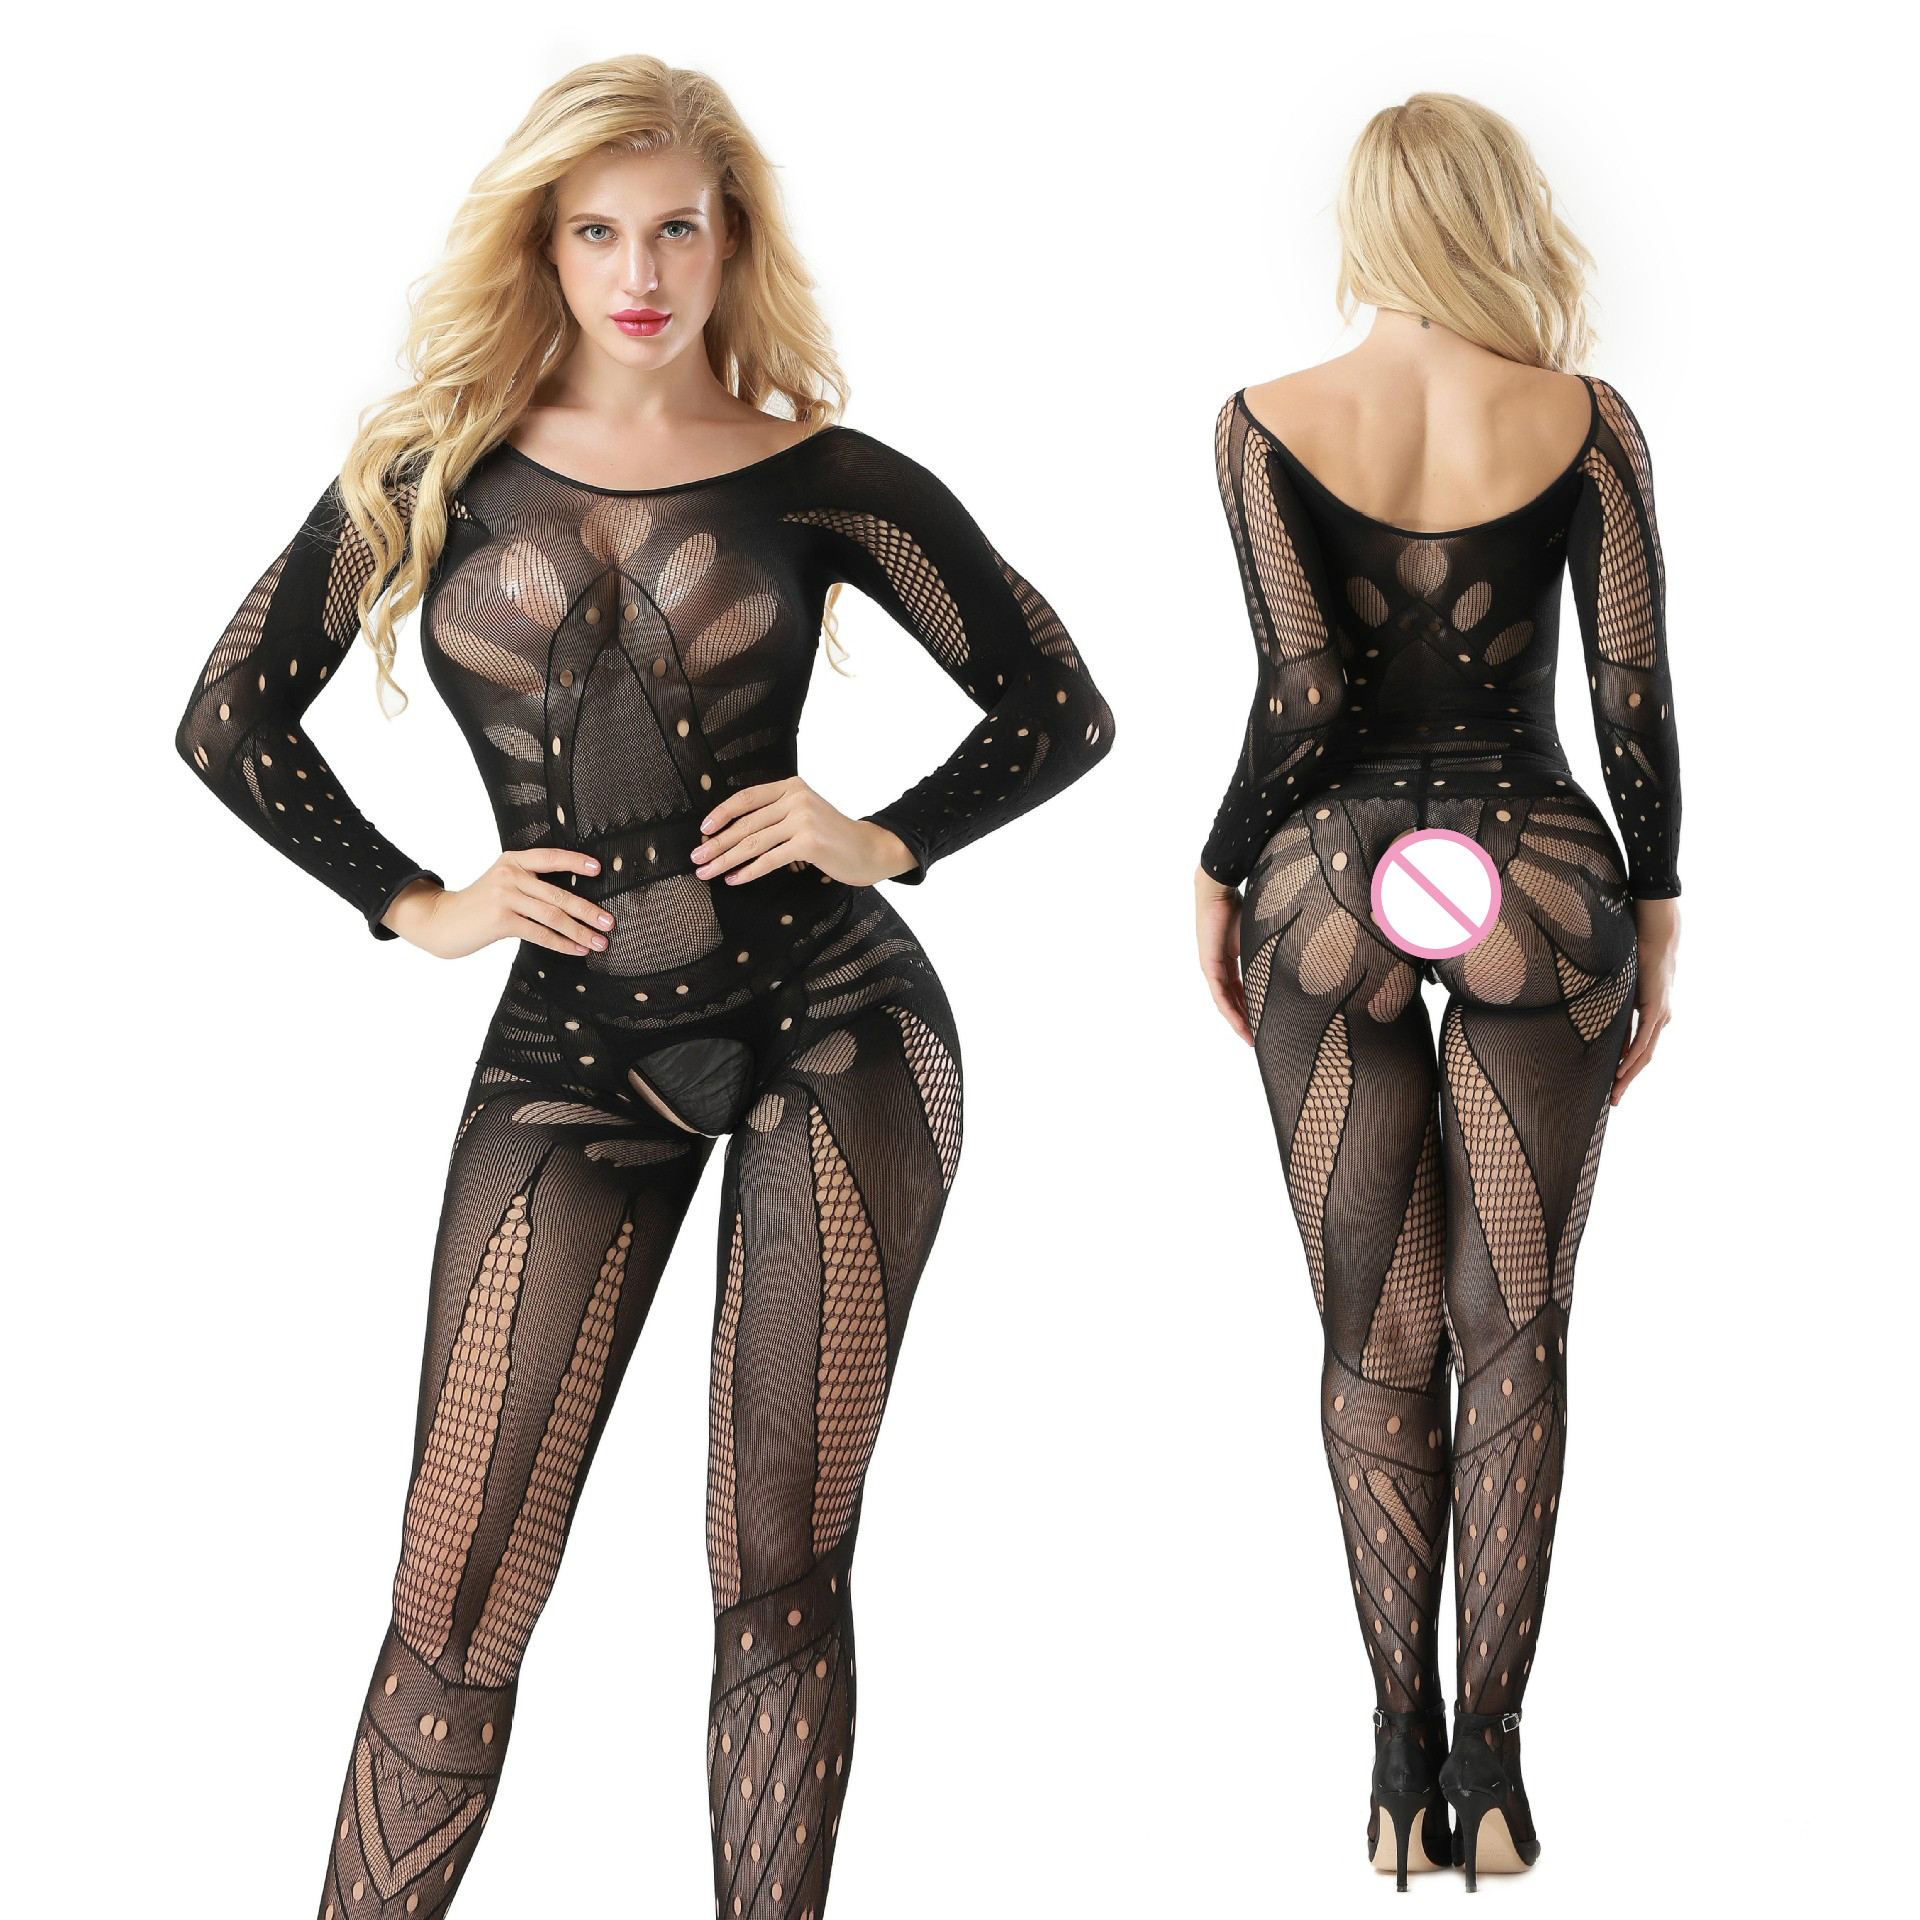 Exotic Apparel Sexy Lingerie High Elastic Tight Hollow Out Fishnet Erotic Net Dress Perspective Sexy Grenadine Short Skirt Sexy Hooded Dresses